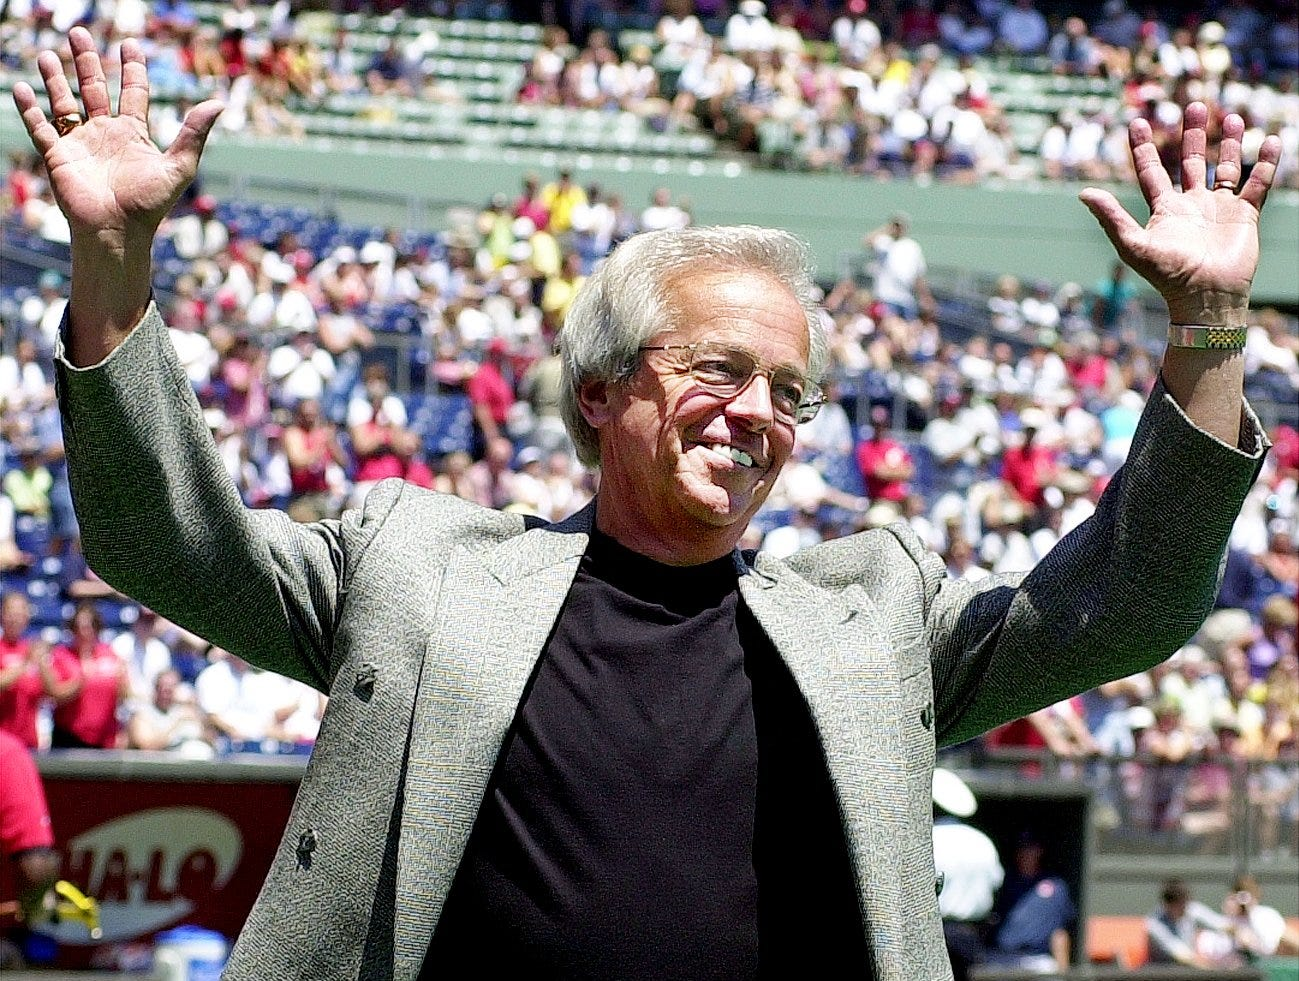 Text: 2000.07.08.12.1 REDS-SPORTS: Cincinnati Reds announcer Marty Brennaman waves to the crowd during ceremonies prior to the Cleveland Indians and Cincinnati Reds game honoring Mr. Brennaman who will be inducted into Baseball's Hall of Fame later this month.